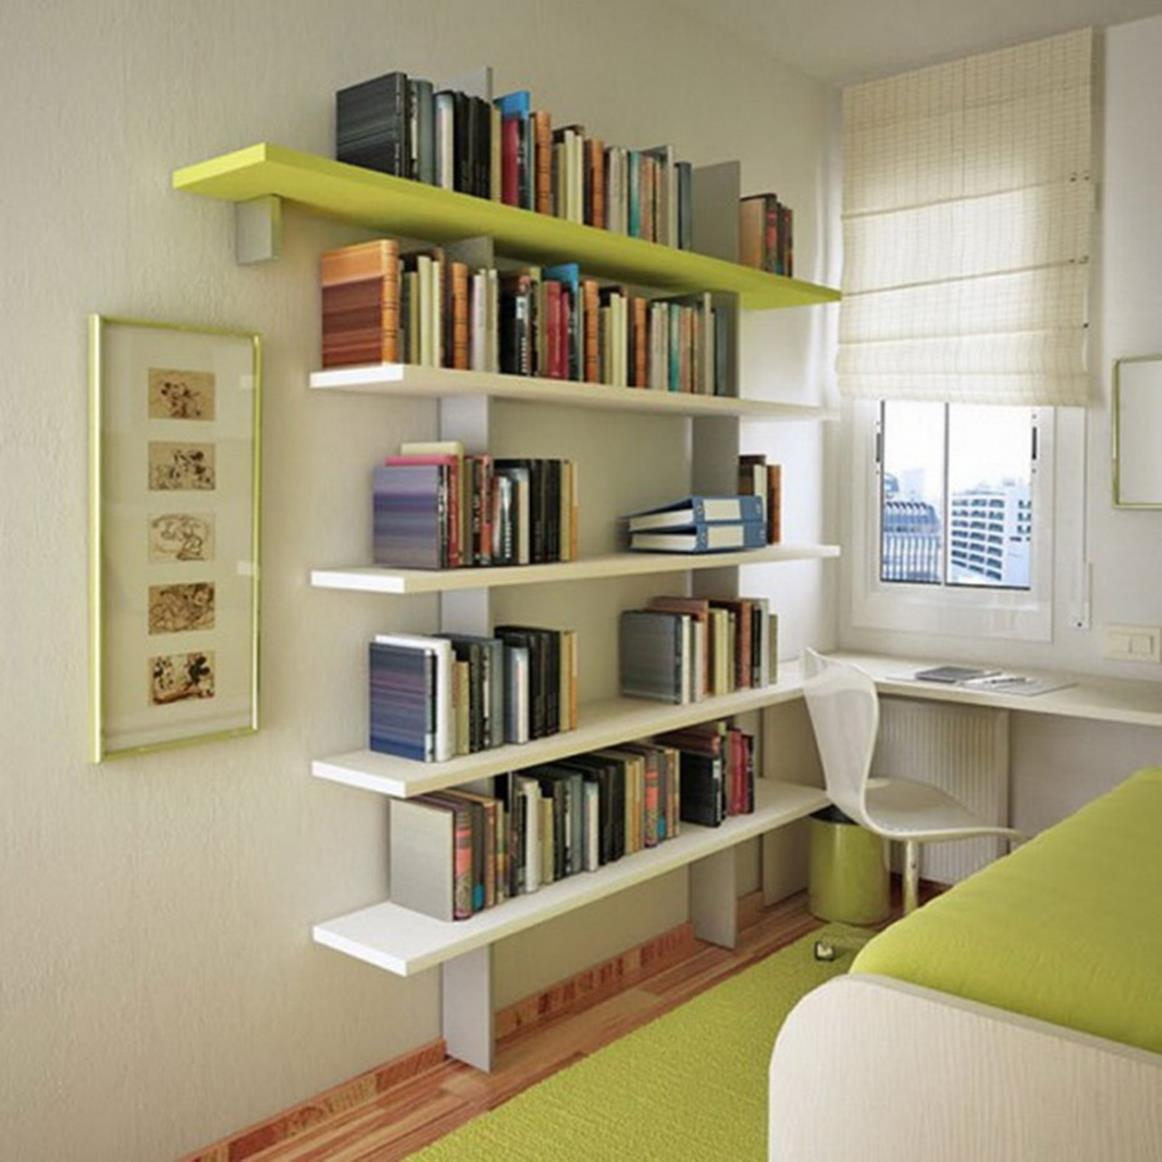 Perfect Bookshelves For Small Spaces and Decor Ideas 2